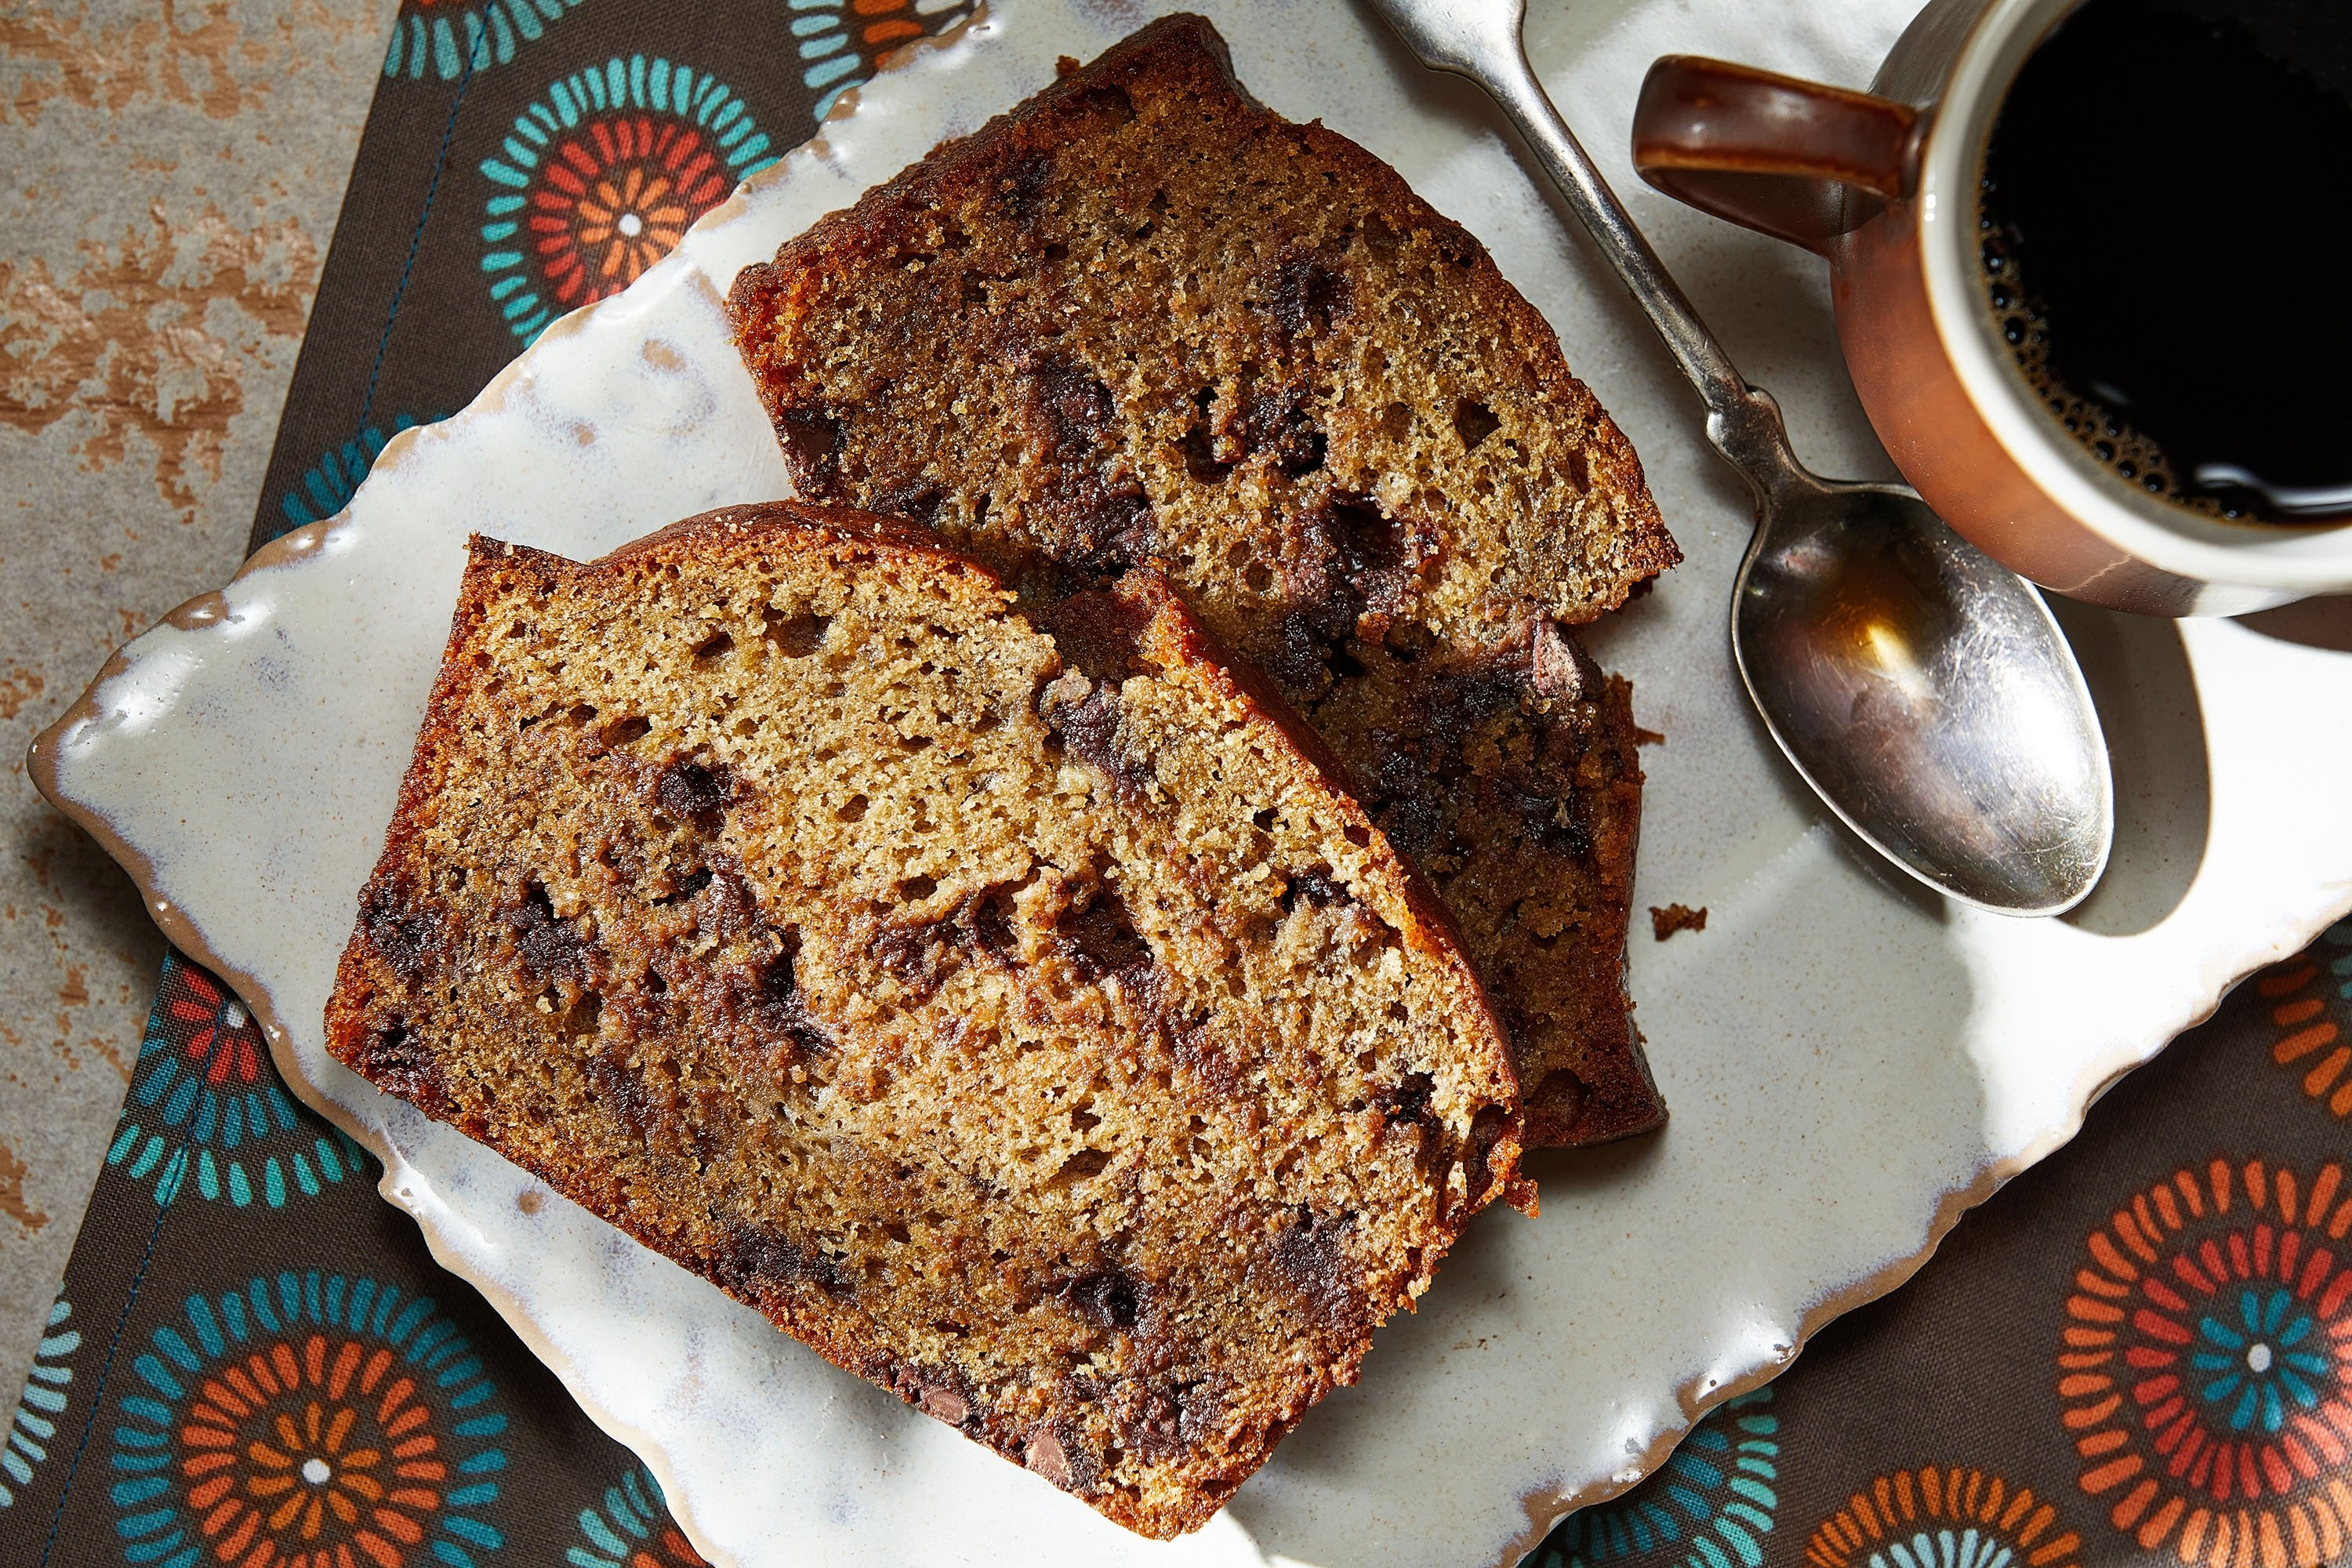 Try coffee-spiked banana bread when the plain version doesn't cut it anymore. (via Getty Images)